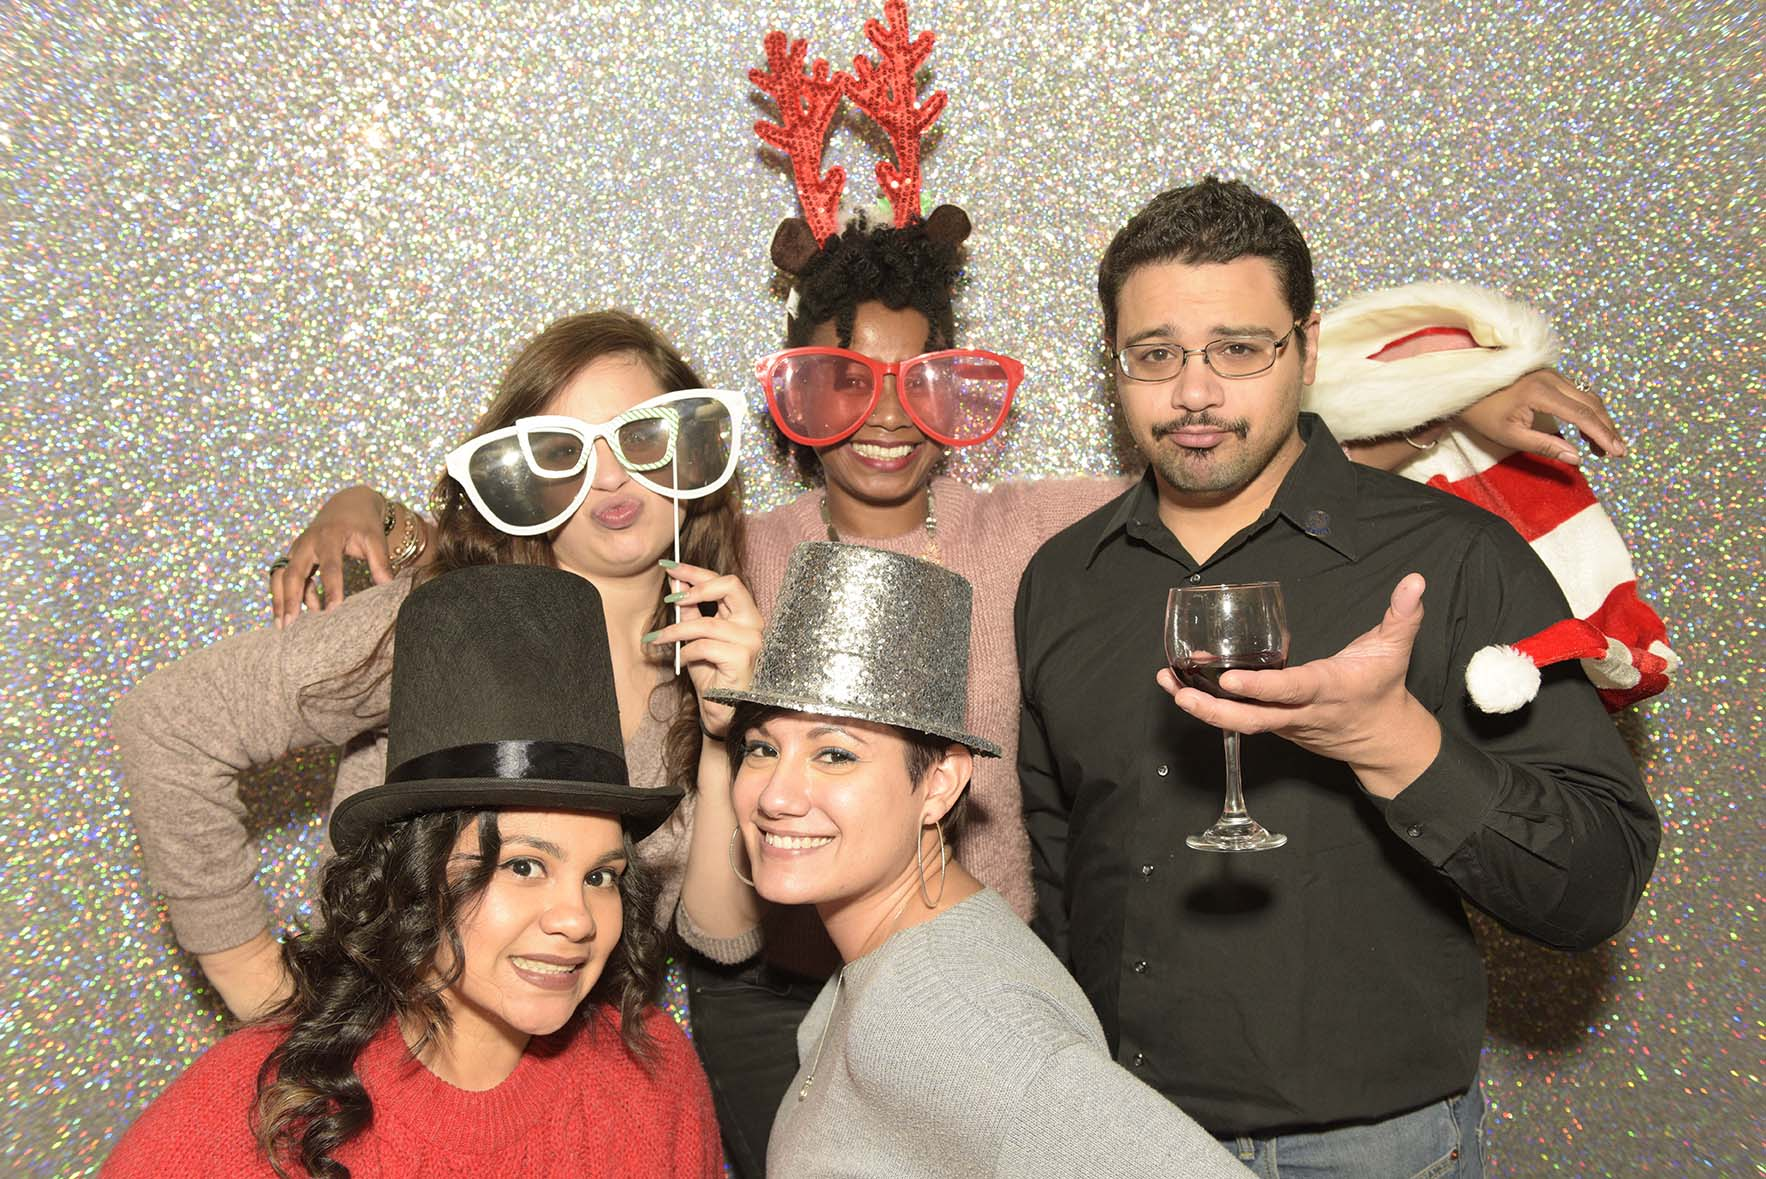 Group Pictures with Photo Booths